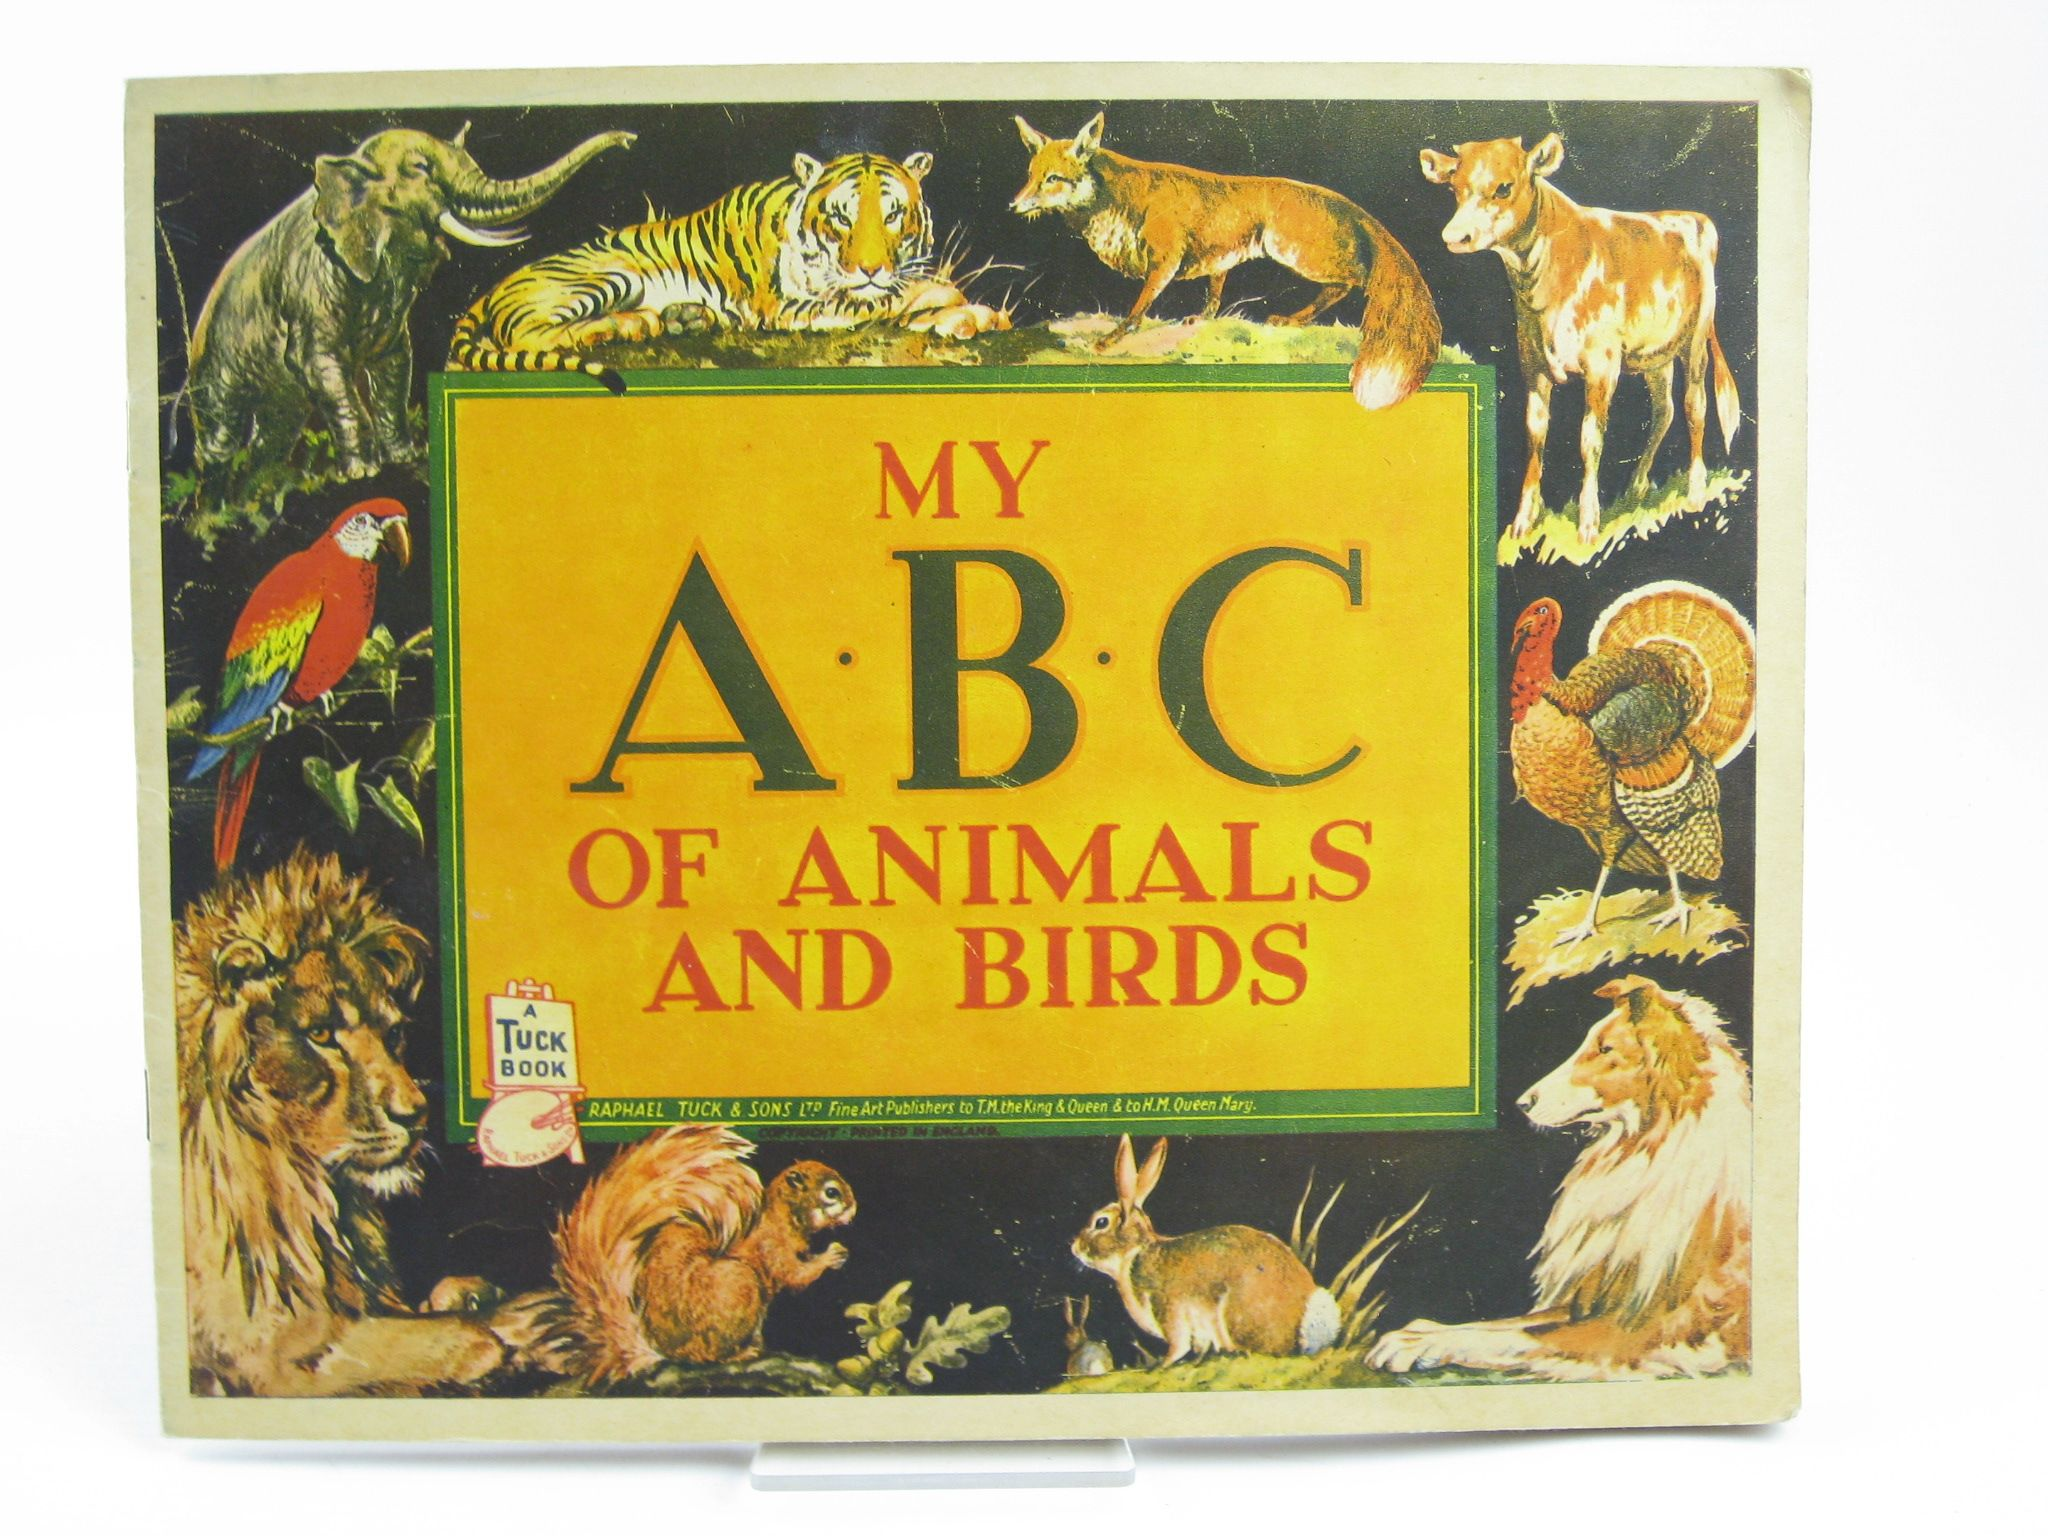 Photo of MY A.B.C. OF ANIMALS AND BIRDS published by Raphael Tuck & Sons Ltd. (STOCK CODE: 1311260)  for sale by Stella & Rose's Books